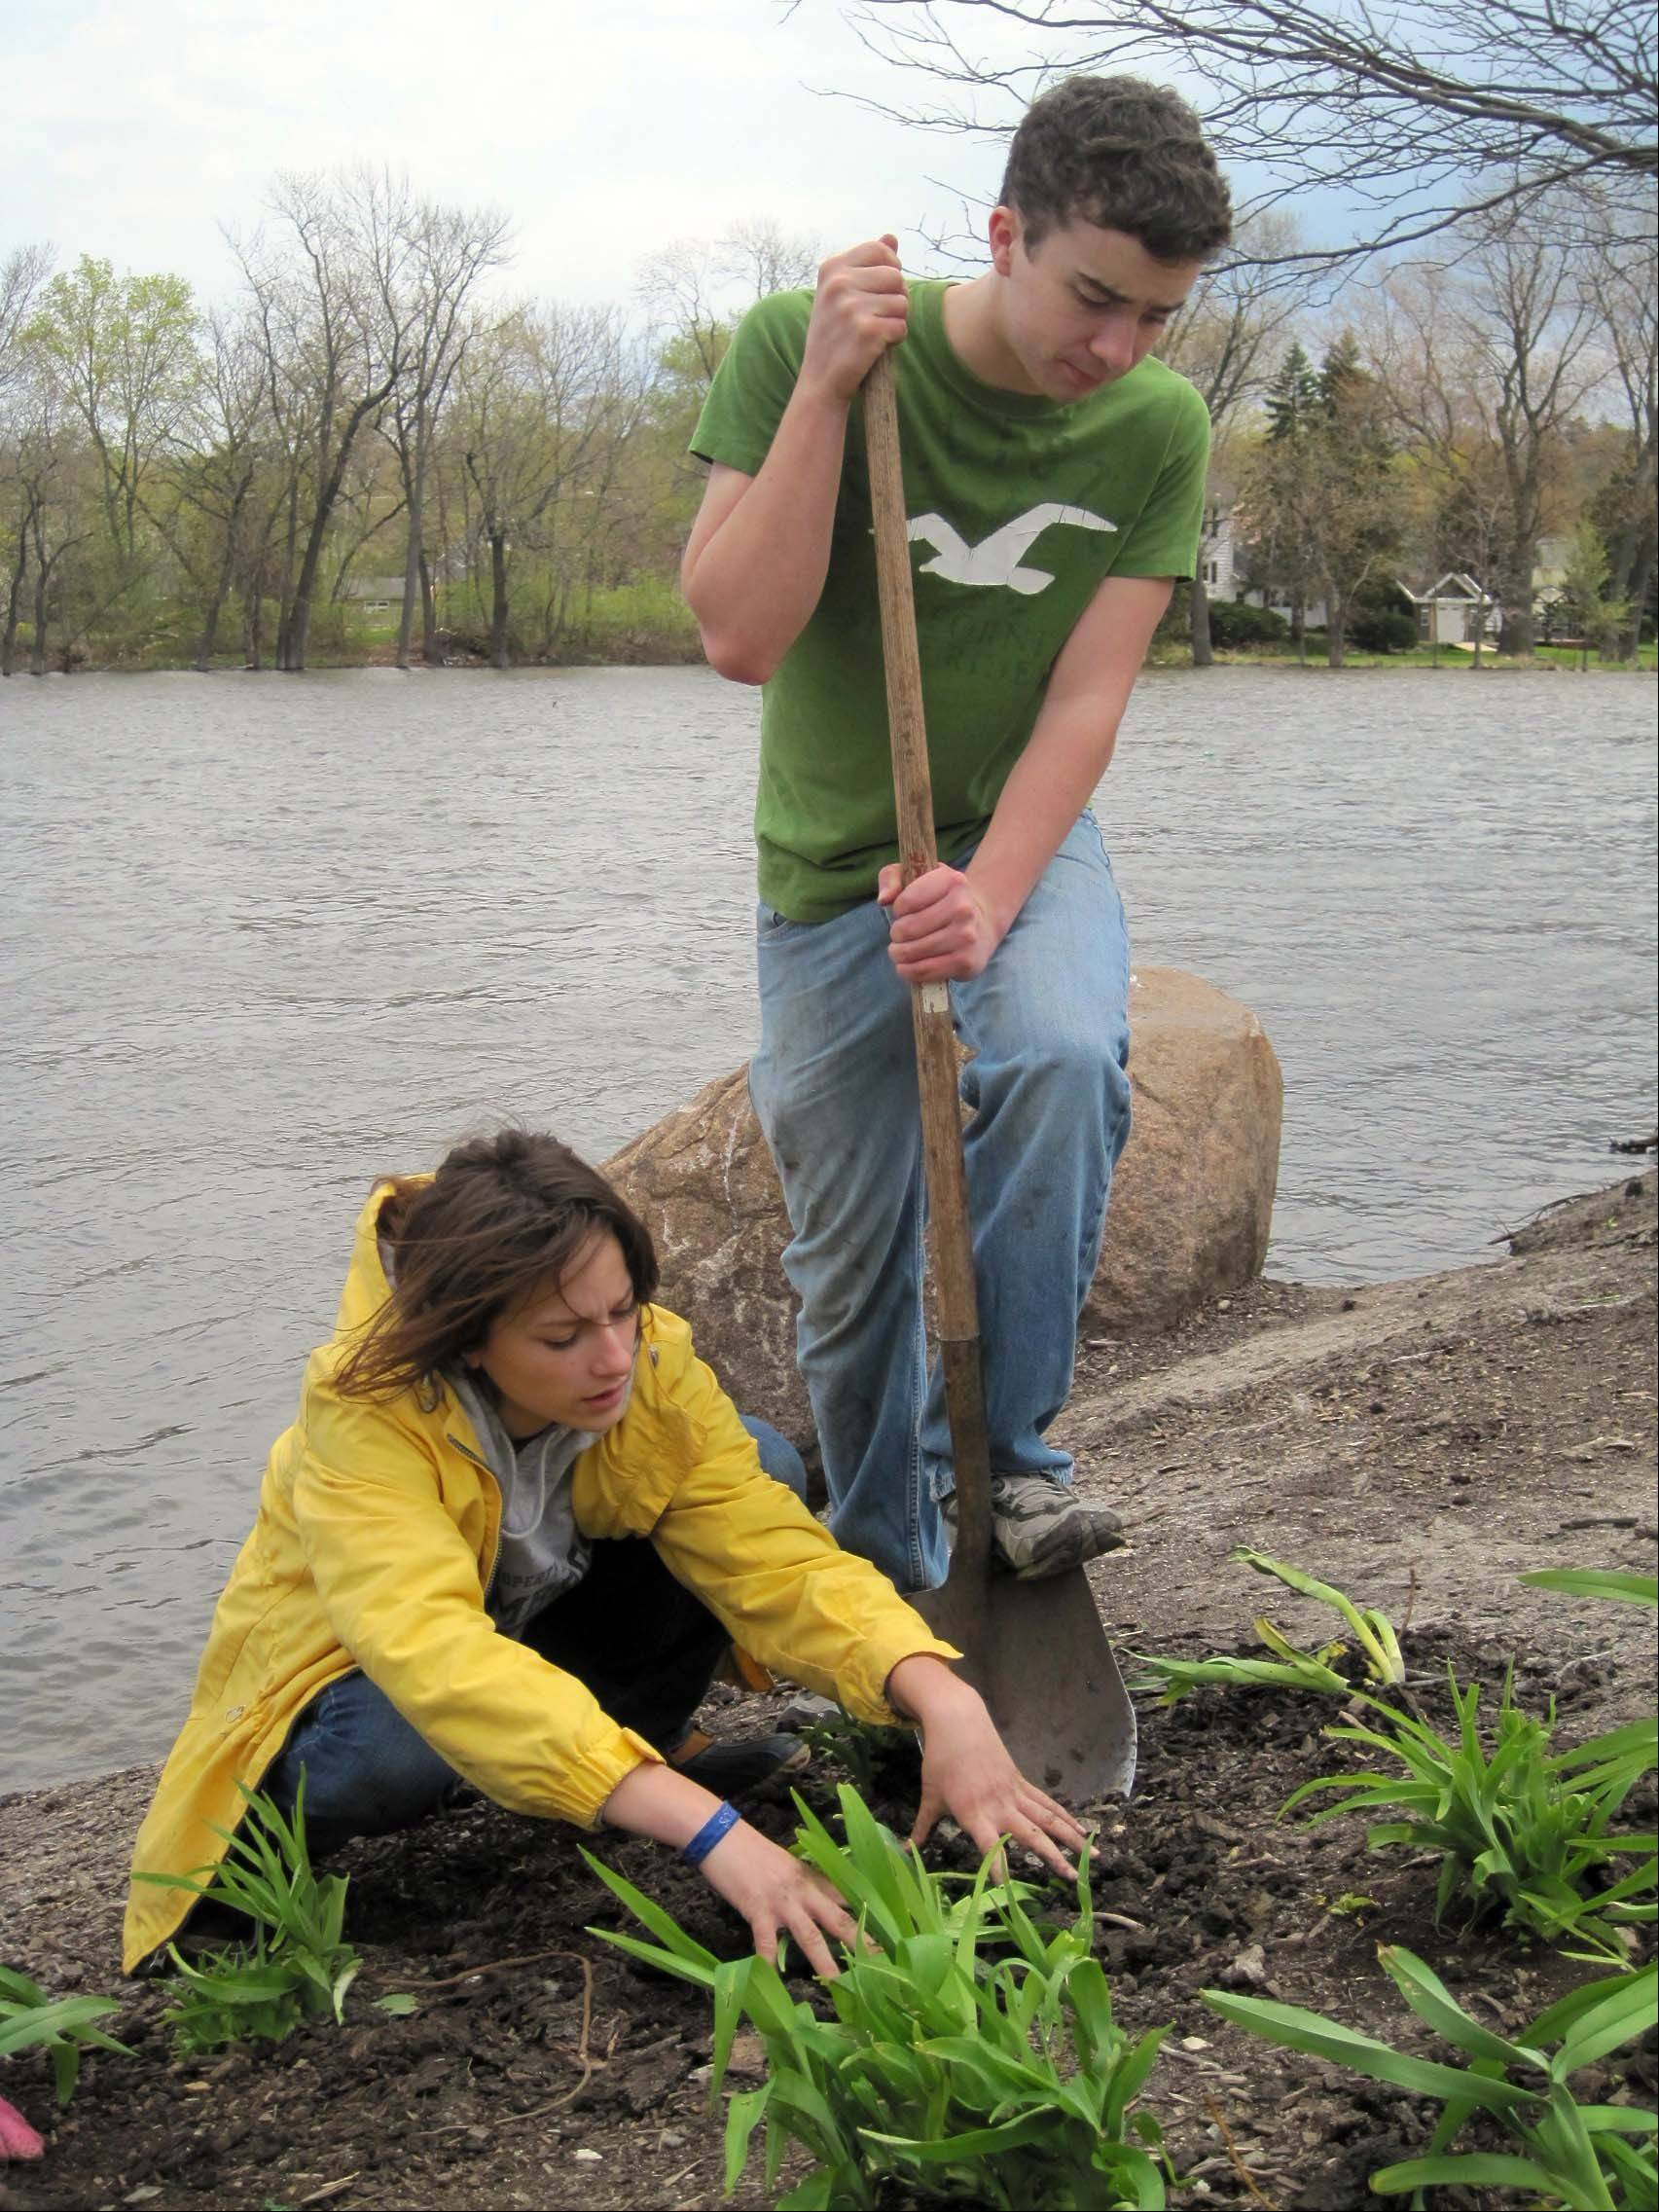 Sara Tompkins, left, and Jeff Marschke, students at Dundee-Crown High School in Carpentersville, plant hostas during a previous Earth Day event along First Street by the Fox River in downtown West Dundee. This Sunday, Cub Scout Pack 36 of West Dundee will lead cleanup efforts by the river.